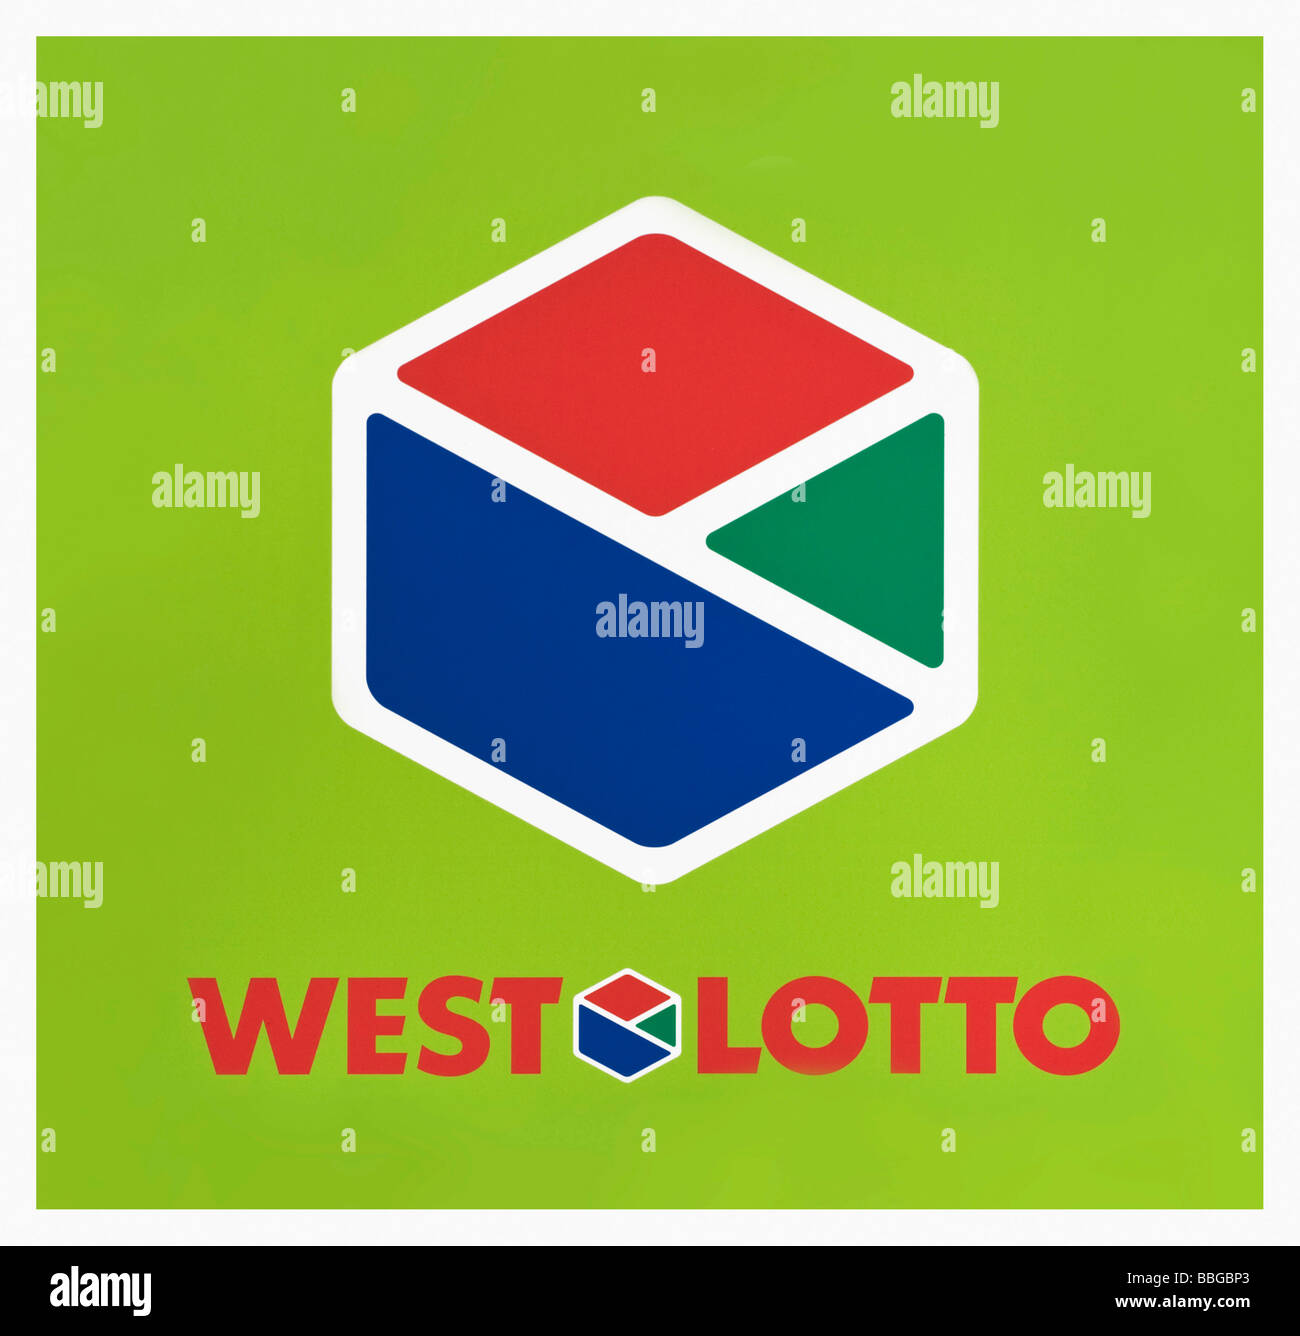 Logo, West Lotto, lottery - Stock Image